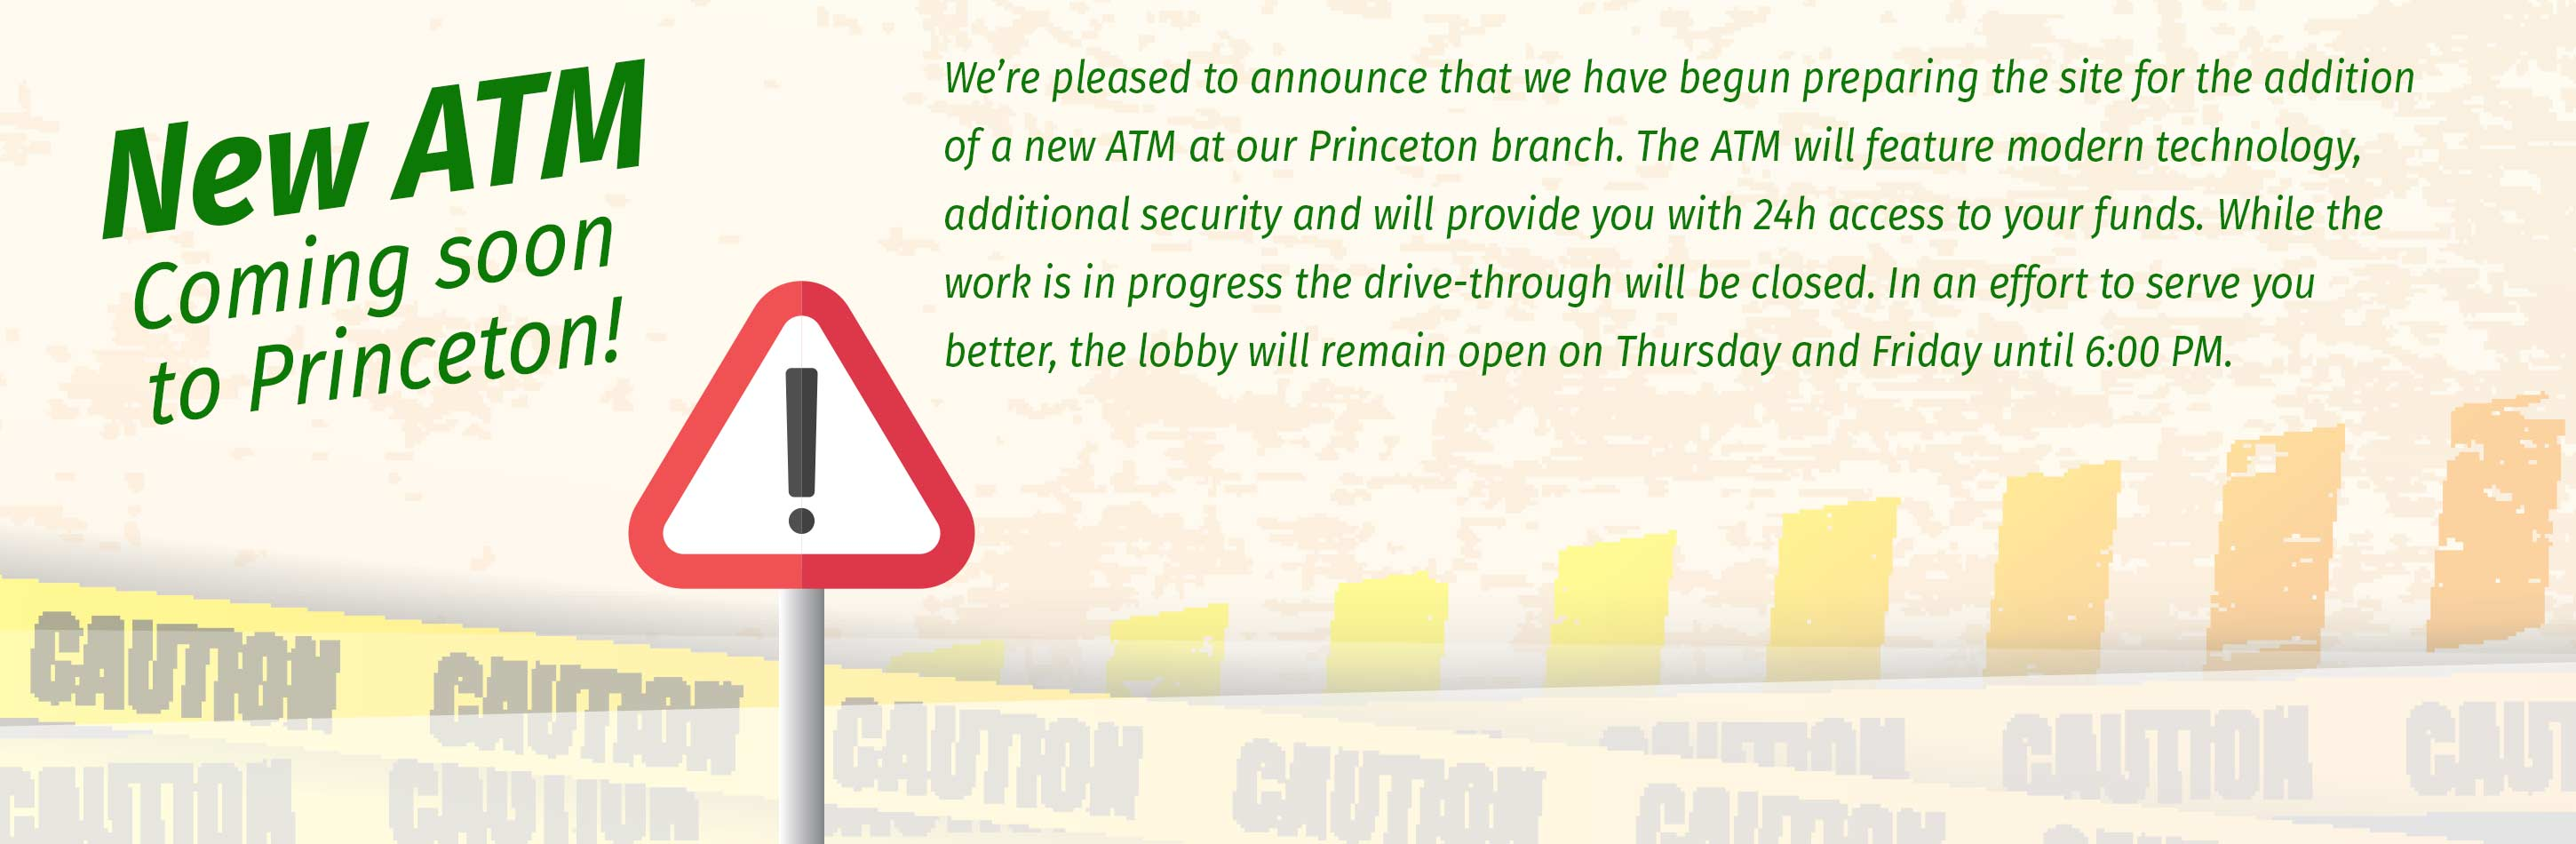 New ATM coming soon to Princeton